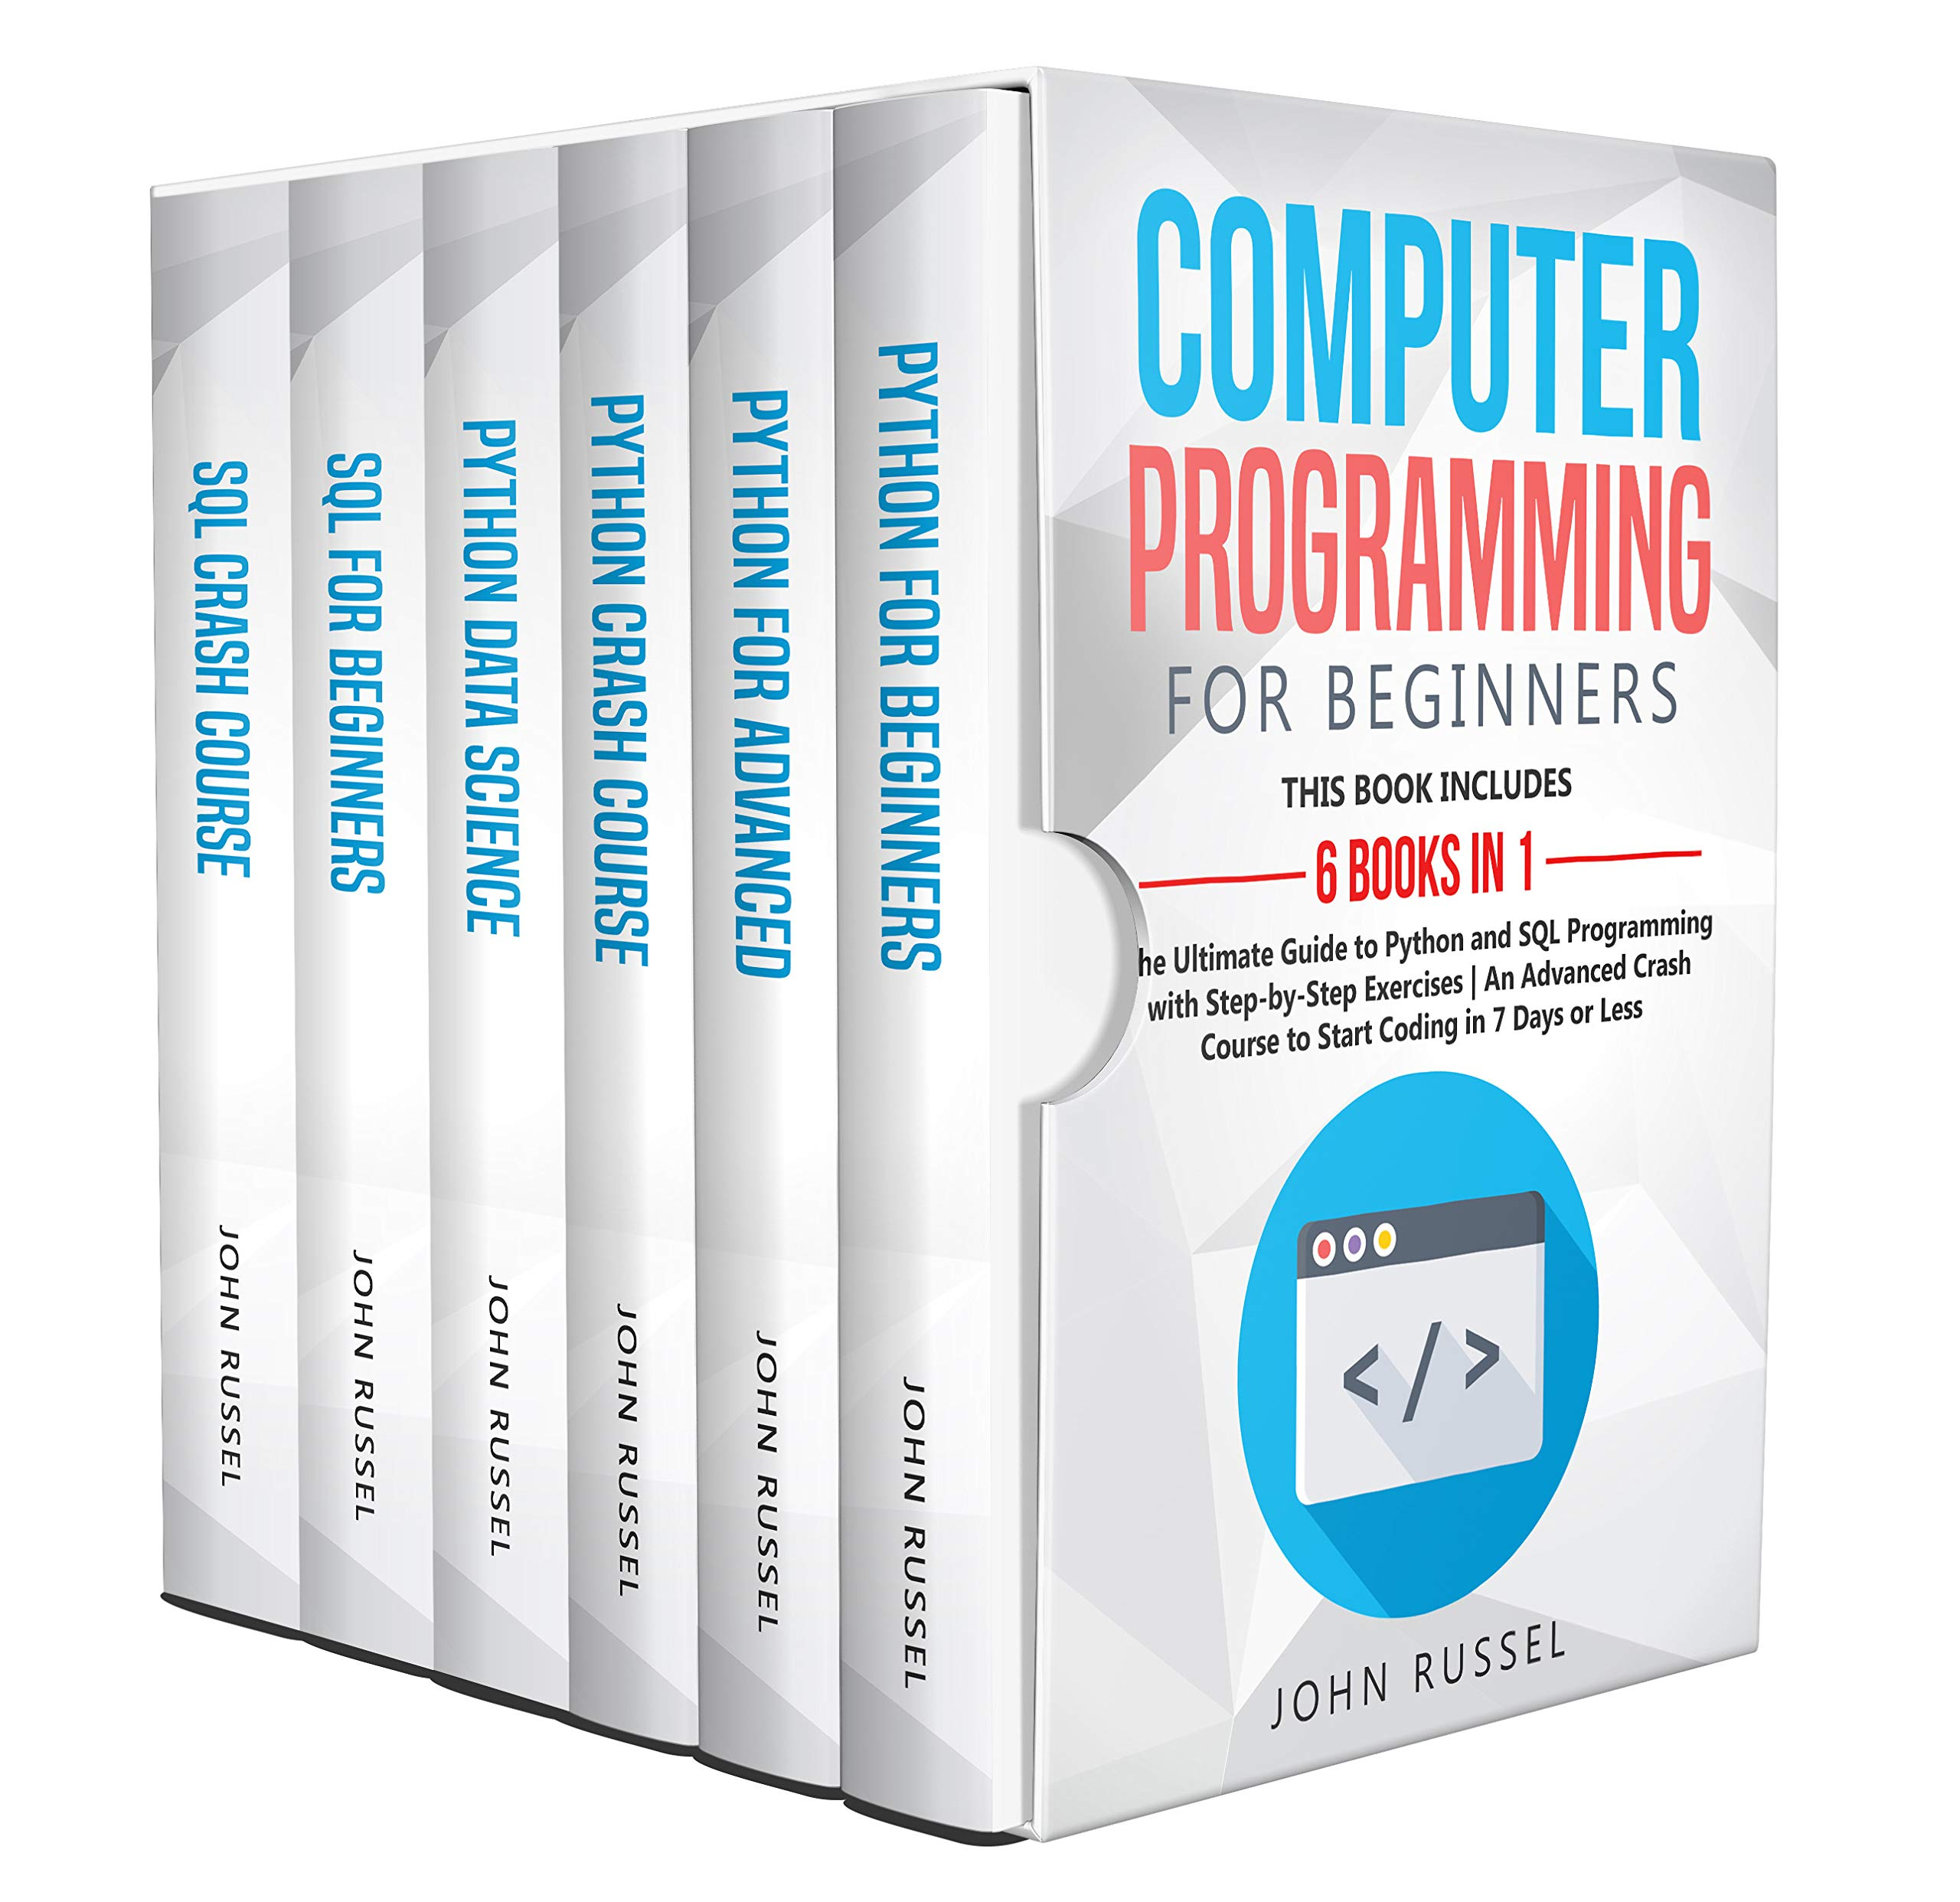 Computer Programming for Beginners: 6 Books in 1: The Ultimate Guide to Python and SQL Programming with Step-by-Step Exercises | An Advanced Crash Course to Start Coding in 7 Days or Less